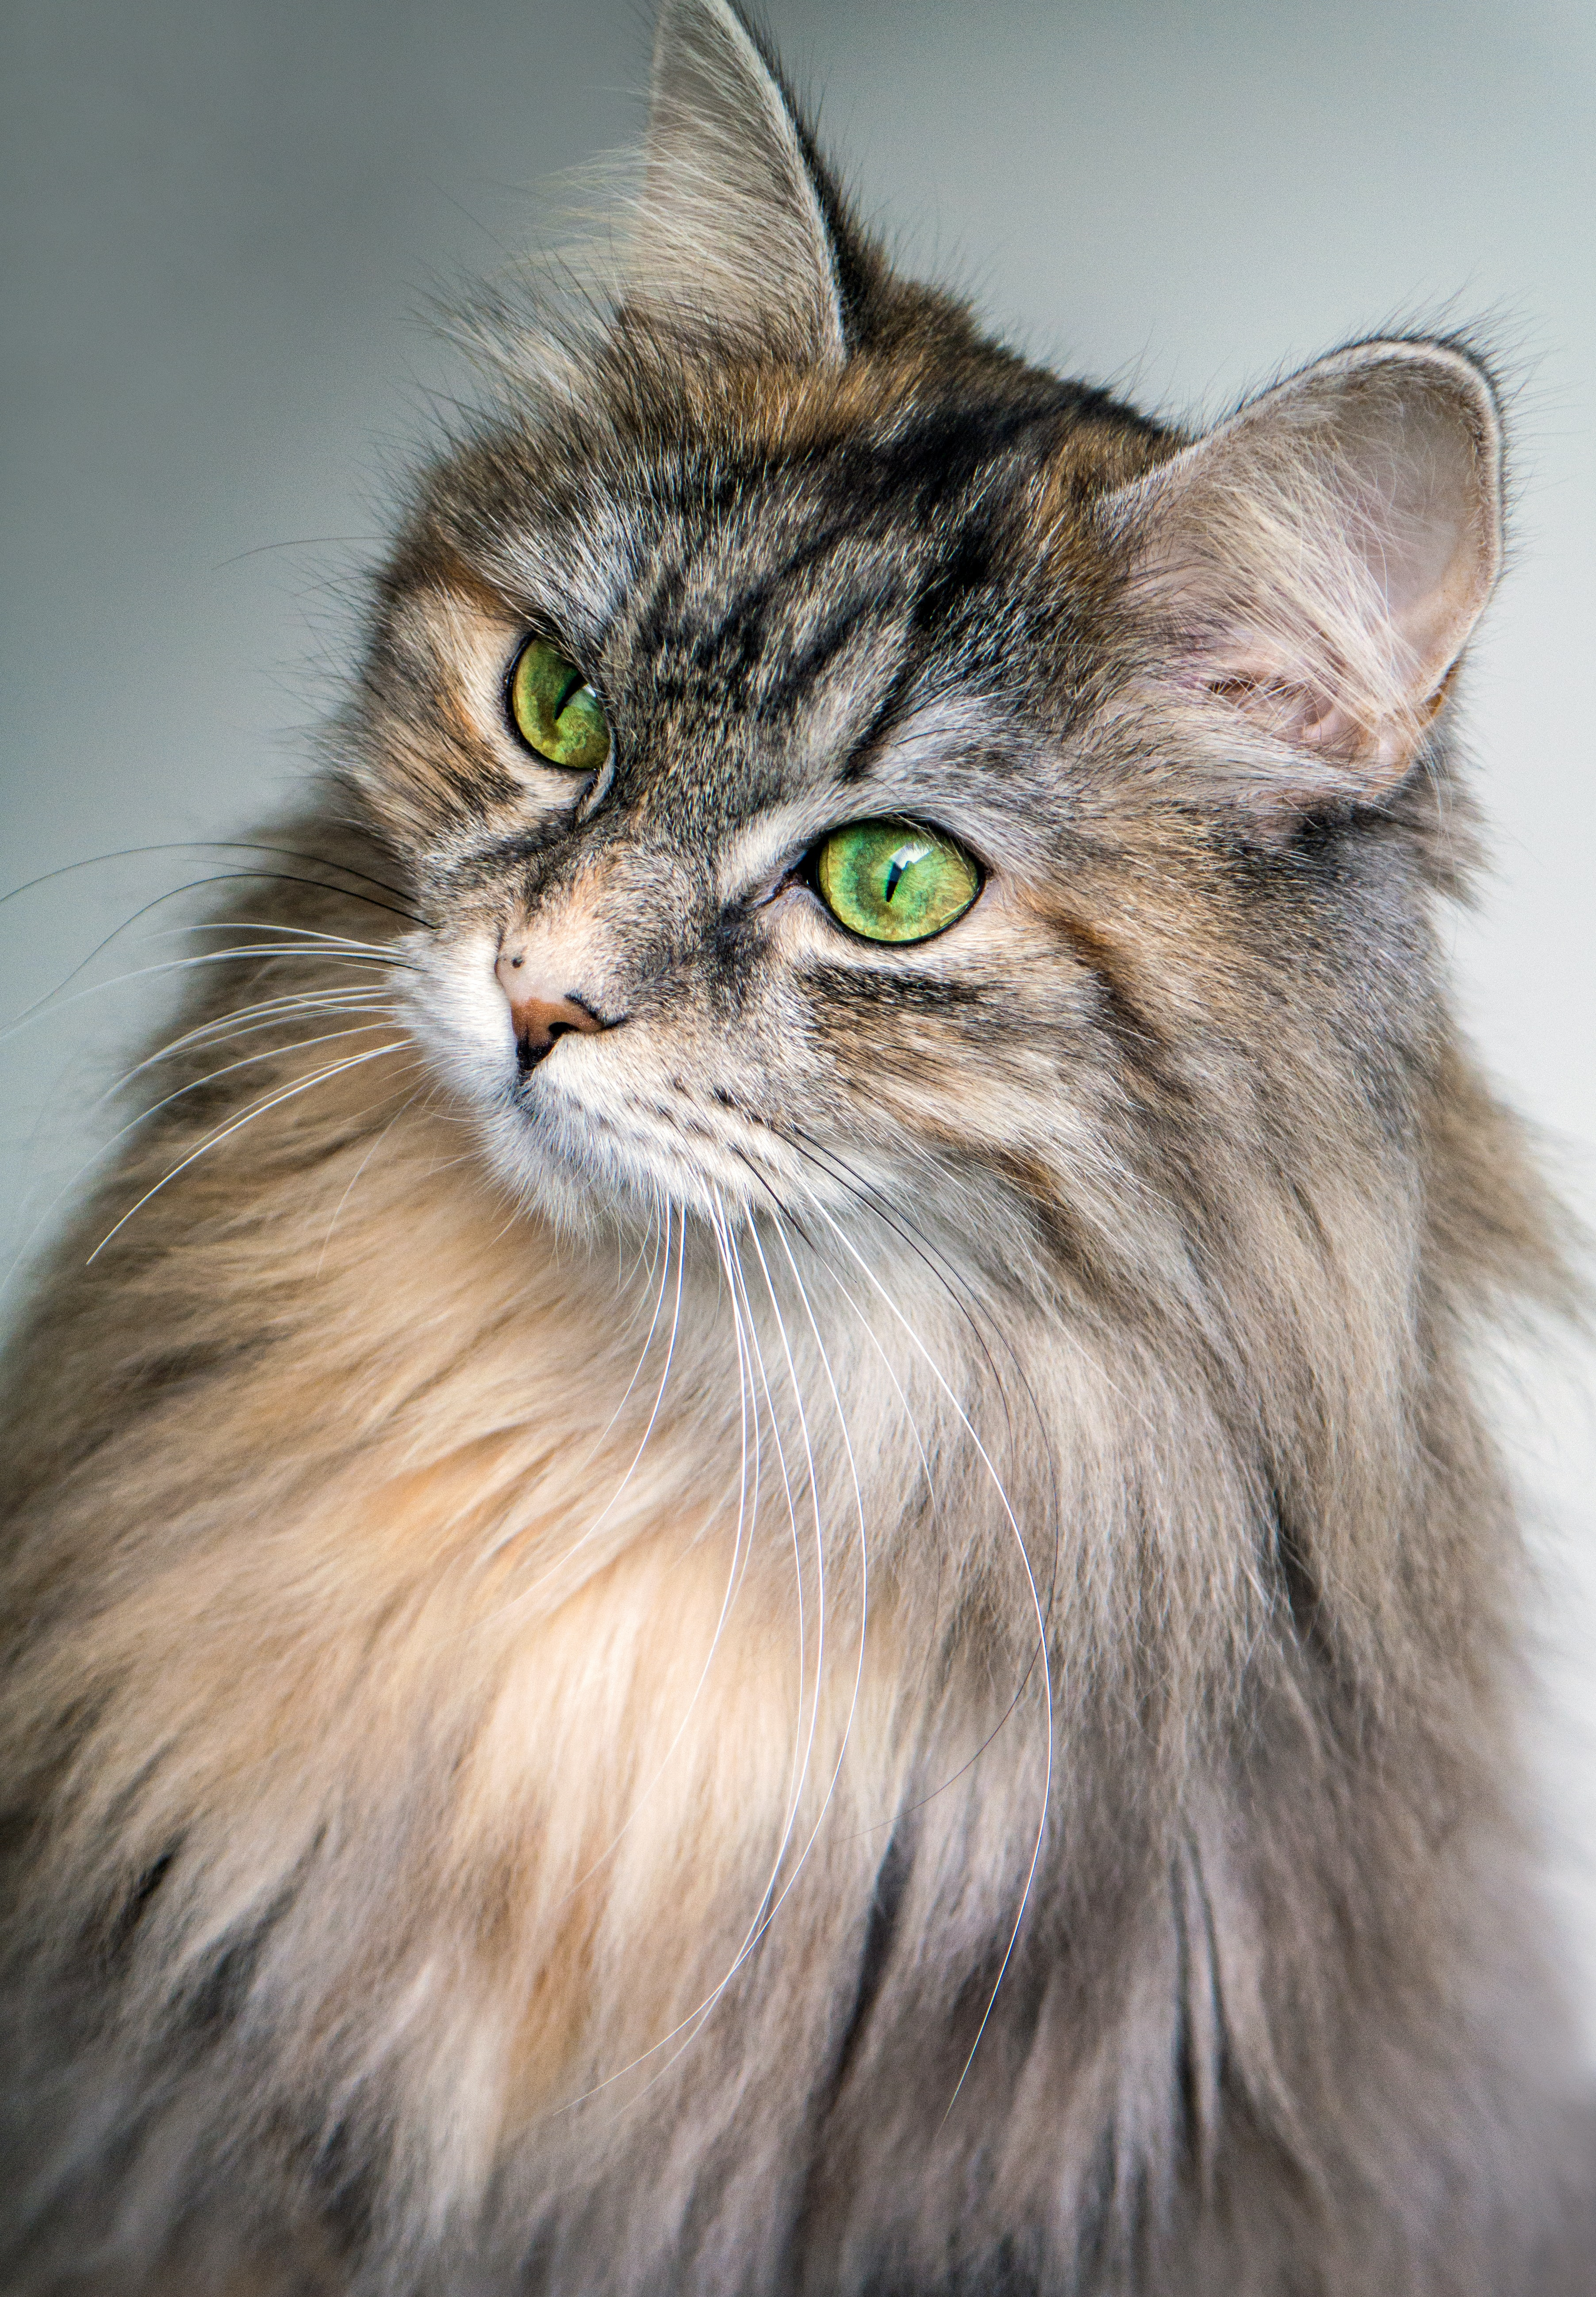 Close-up of a furry green-eyed Maine Coon cat